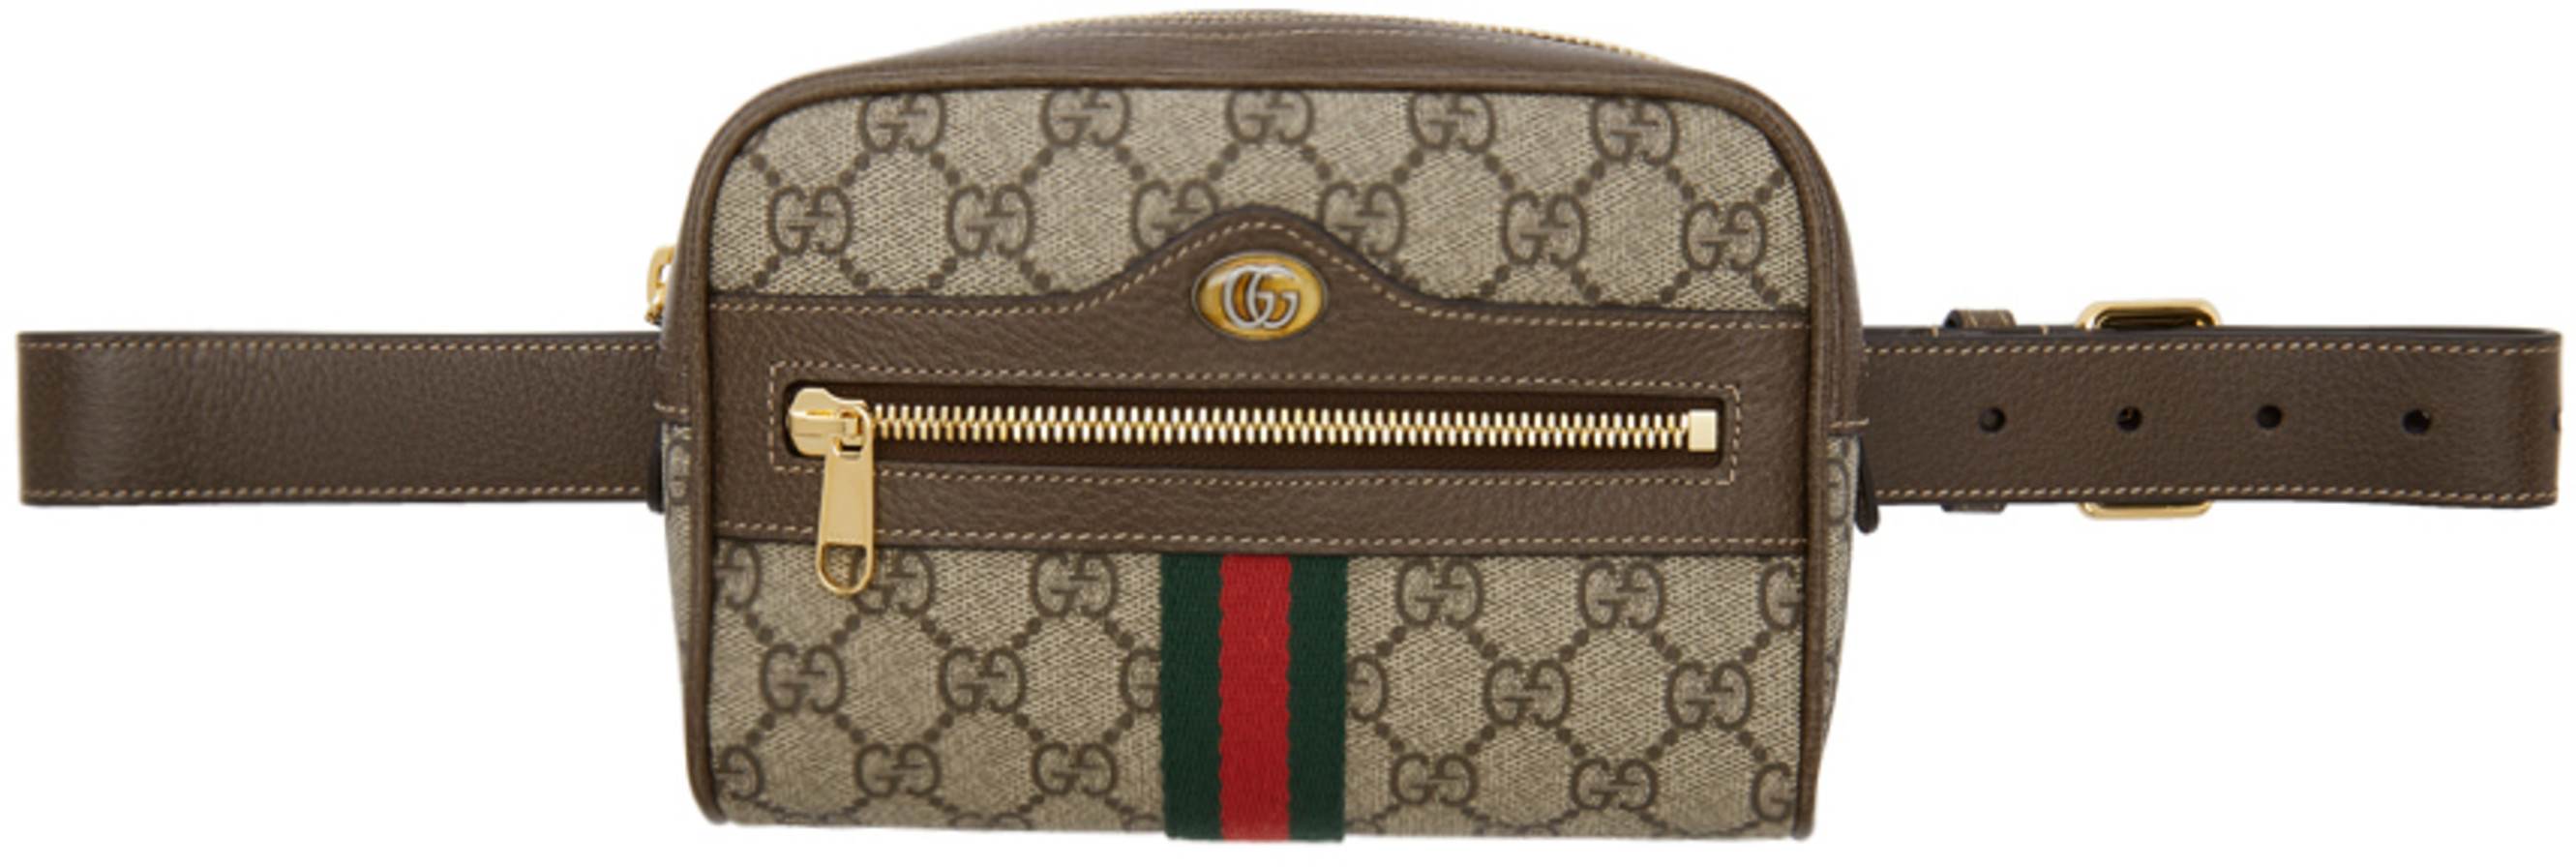 3a252fbbf9bf Gucci for Women SS19 Collection | SSENSE